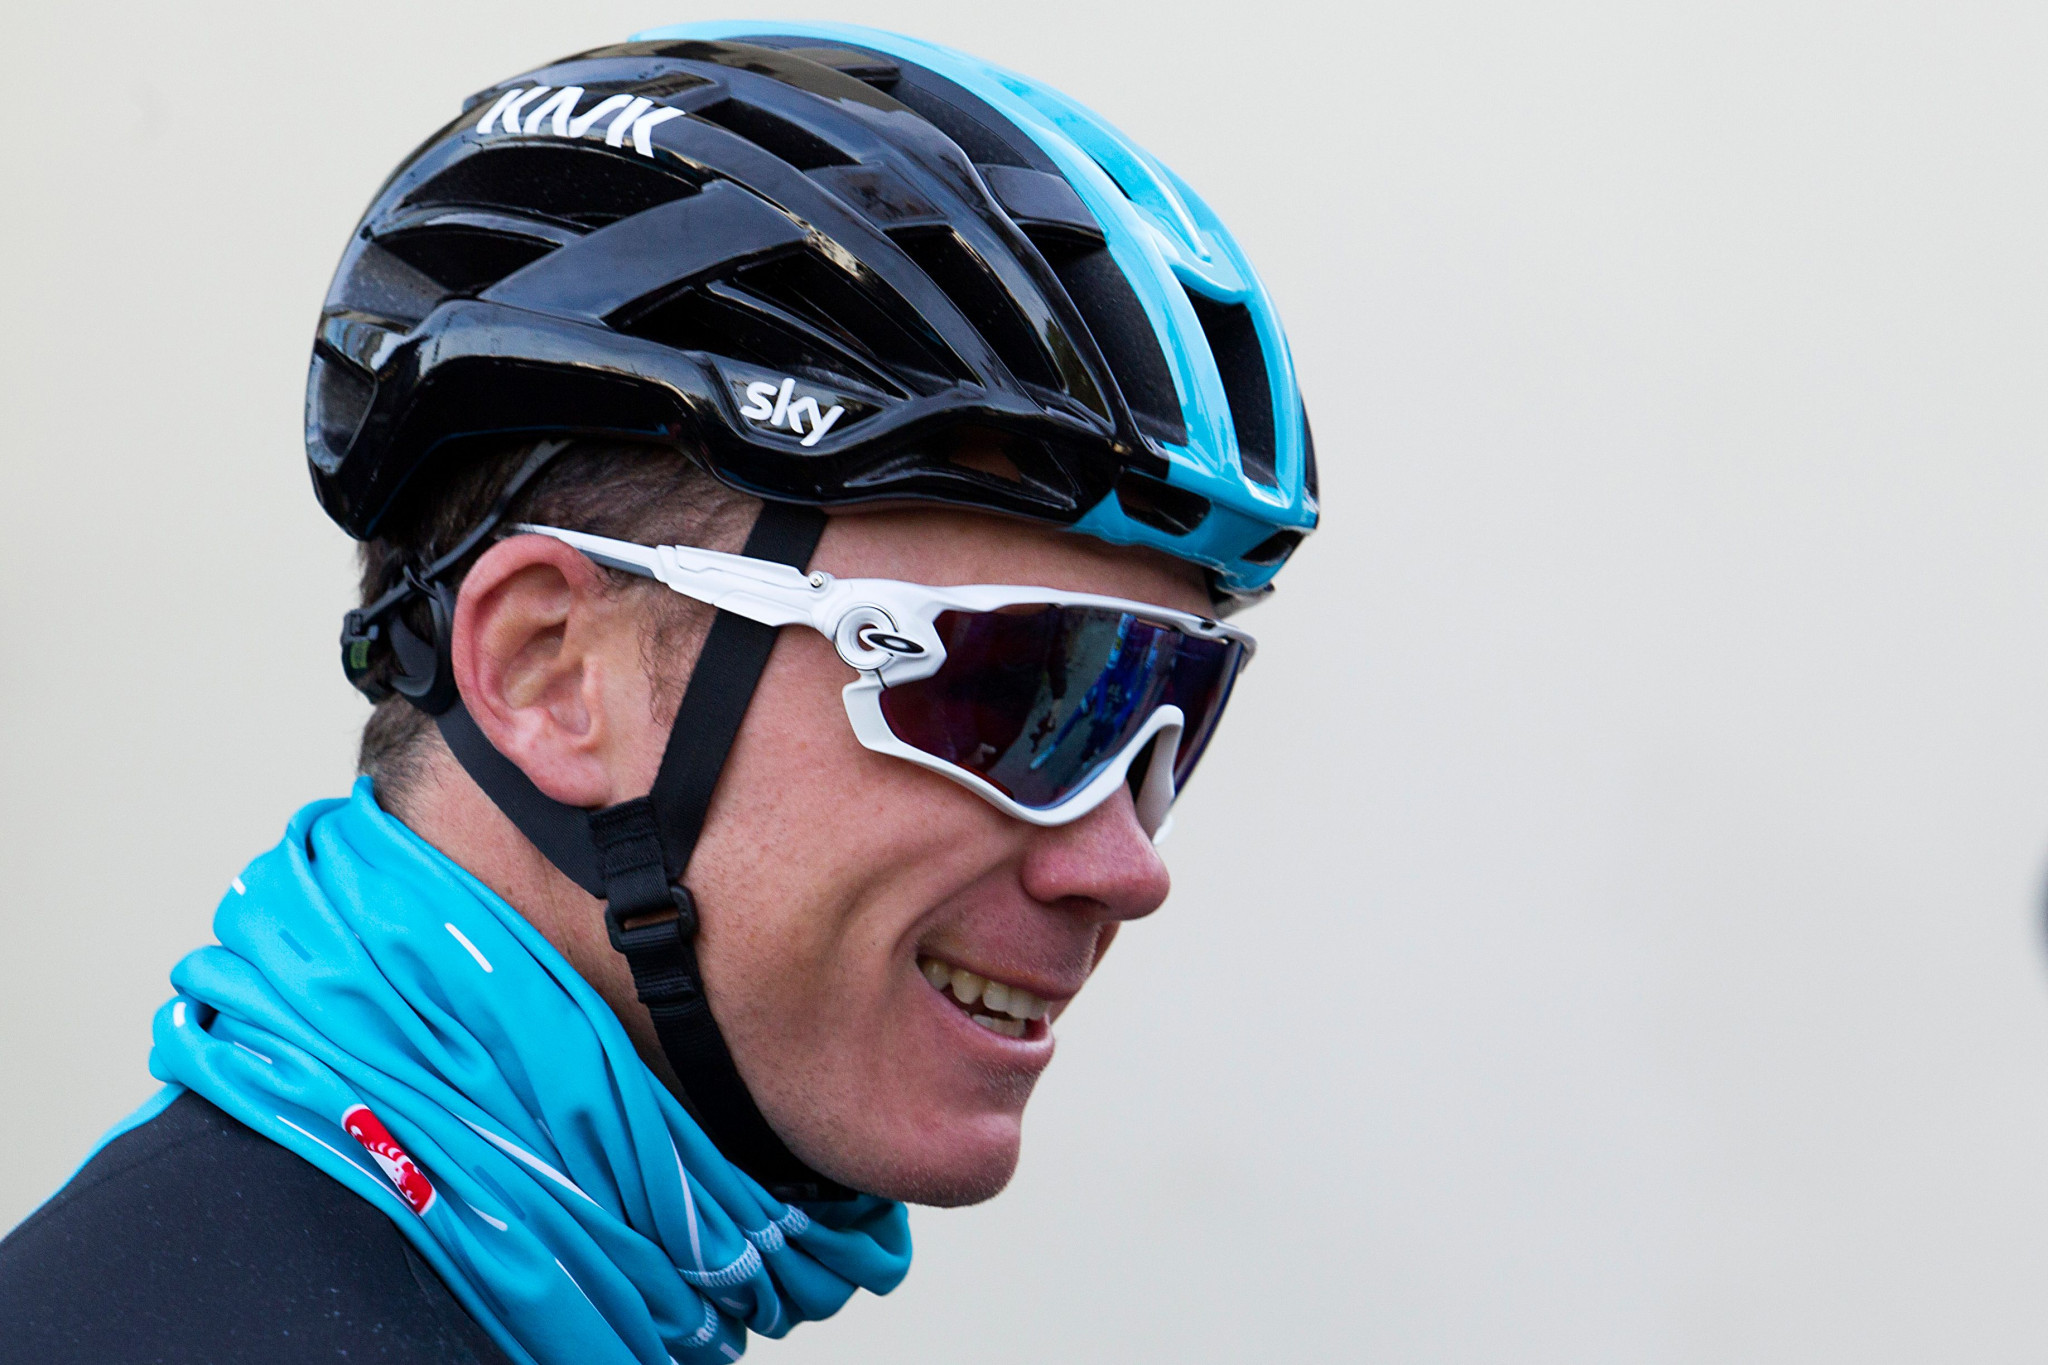 Chris Froome pictured during a training session today in Mallorca ©Getty Images